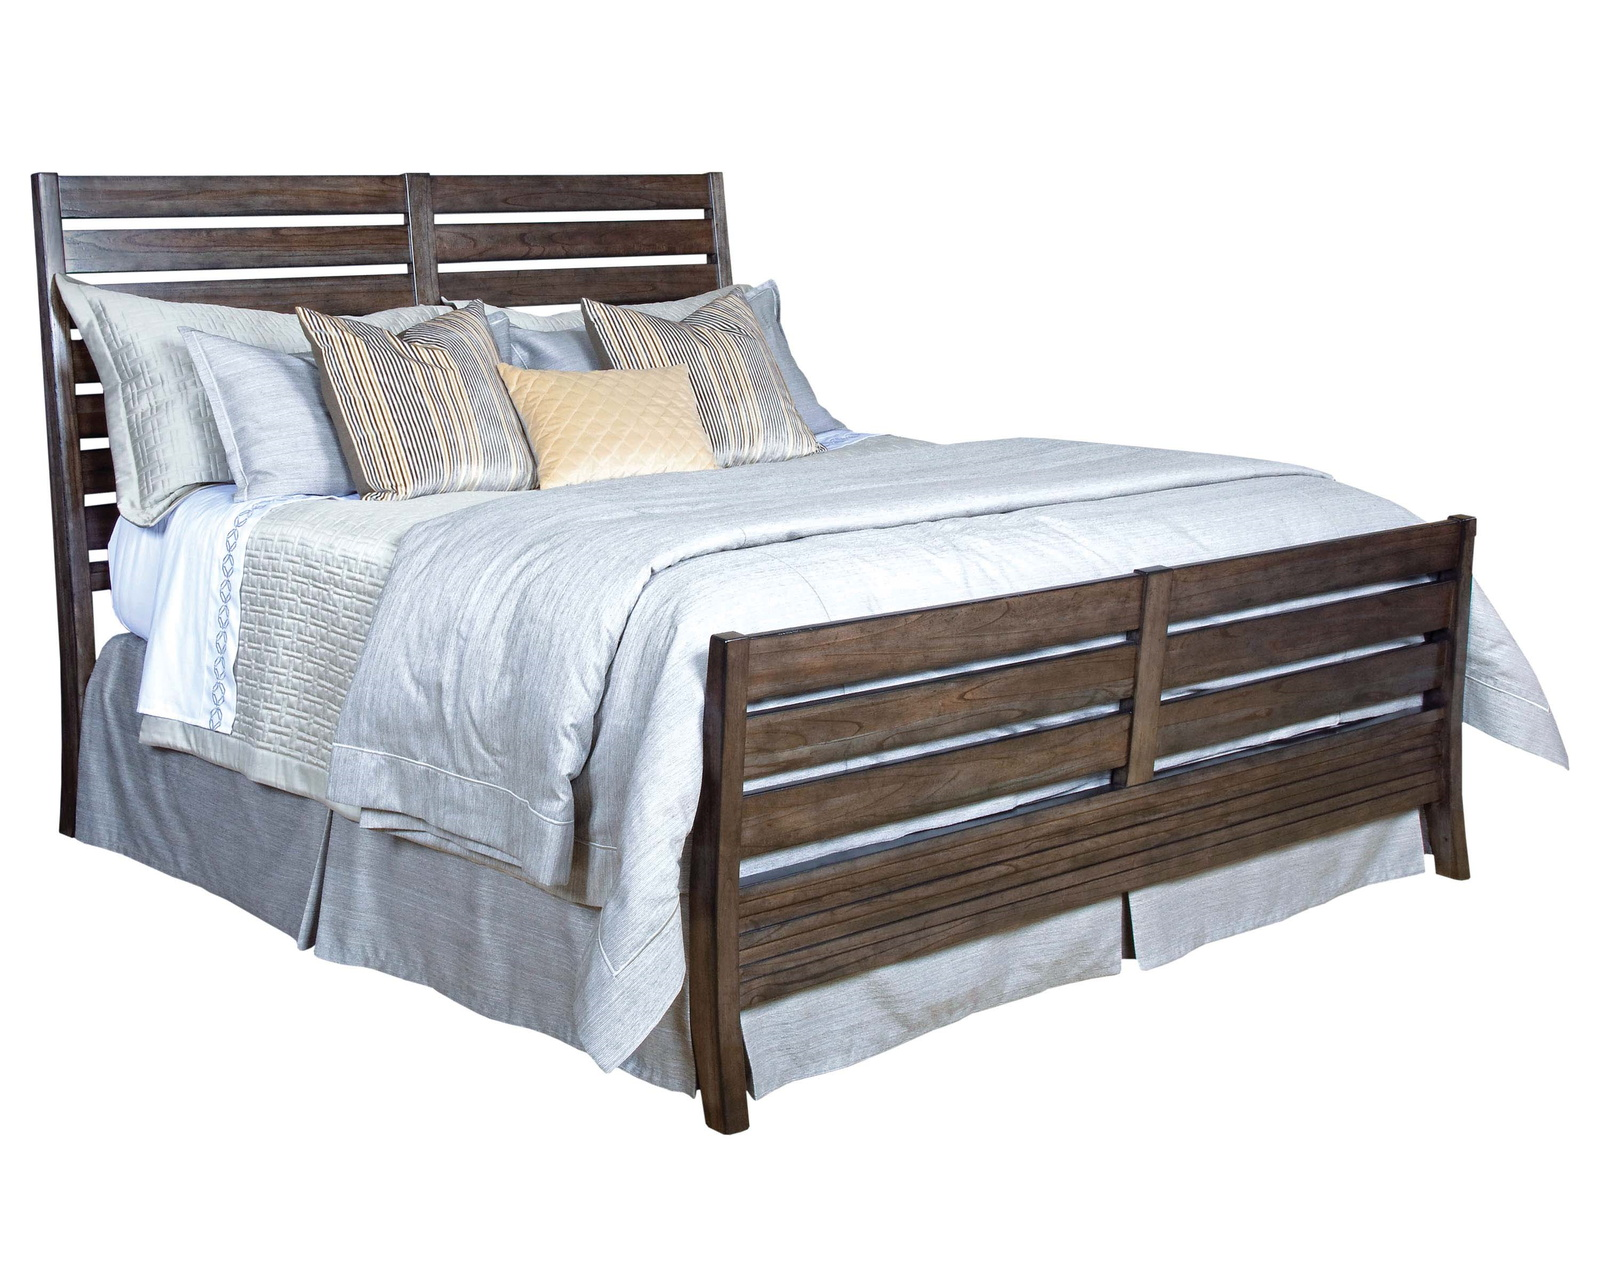 Kincaid Sleigh Bed at Bedroom Furniture Discounts